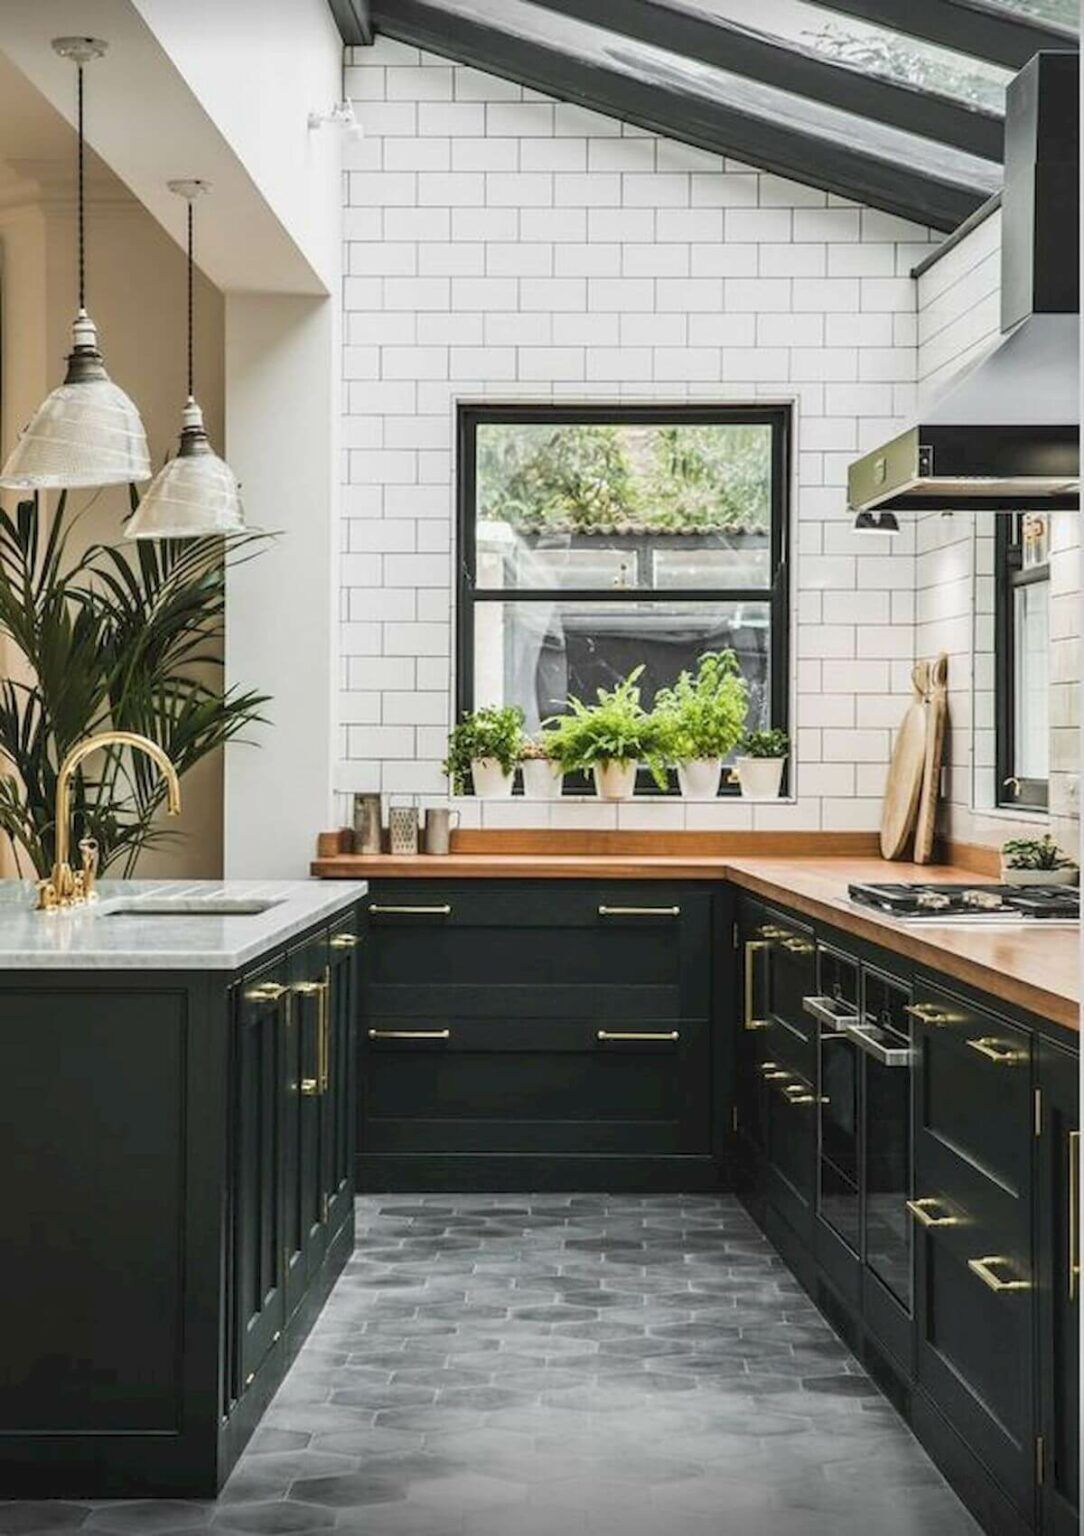 9 Awesome Floor Kitchen Ideas for an Eye catching Kitchen ...